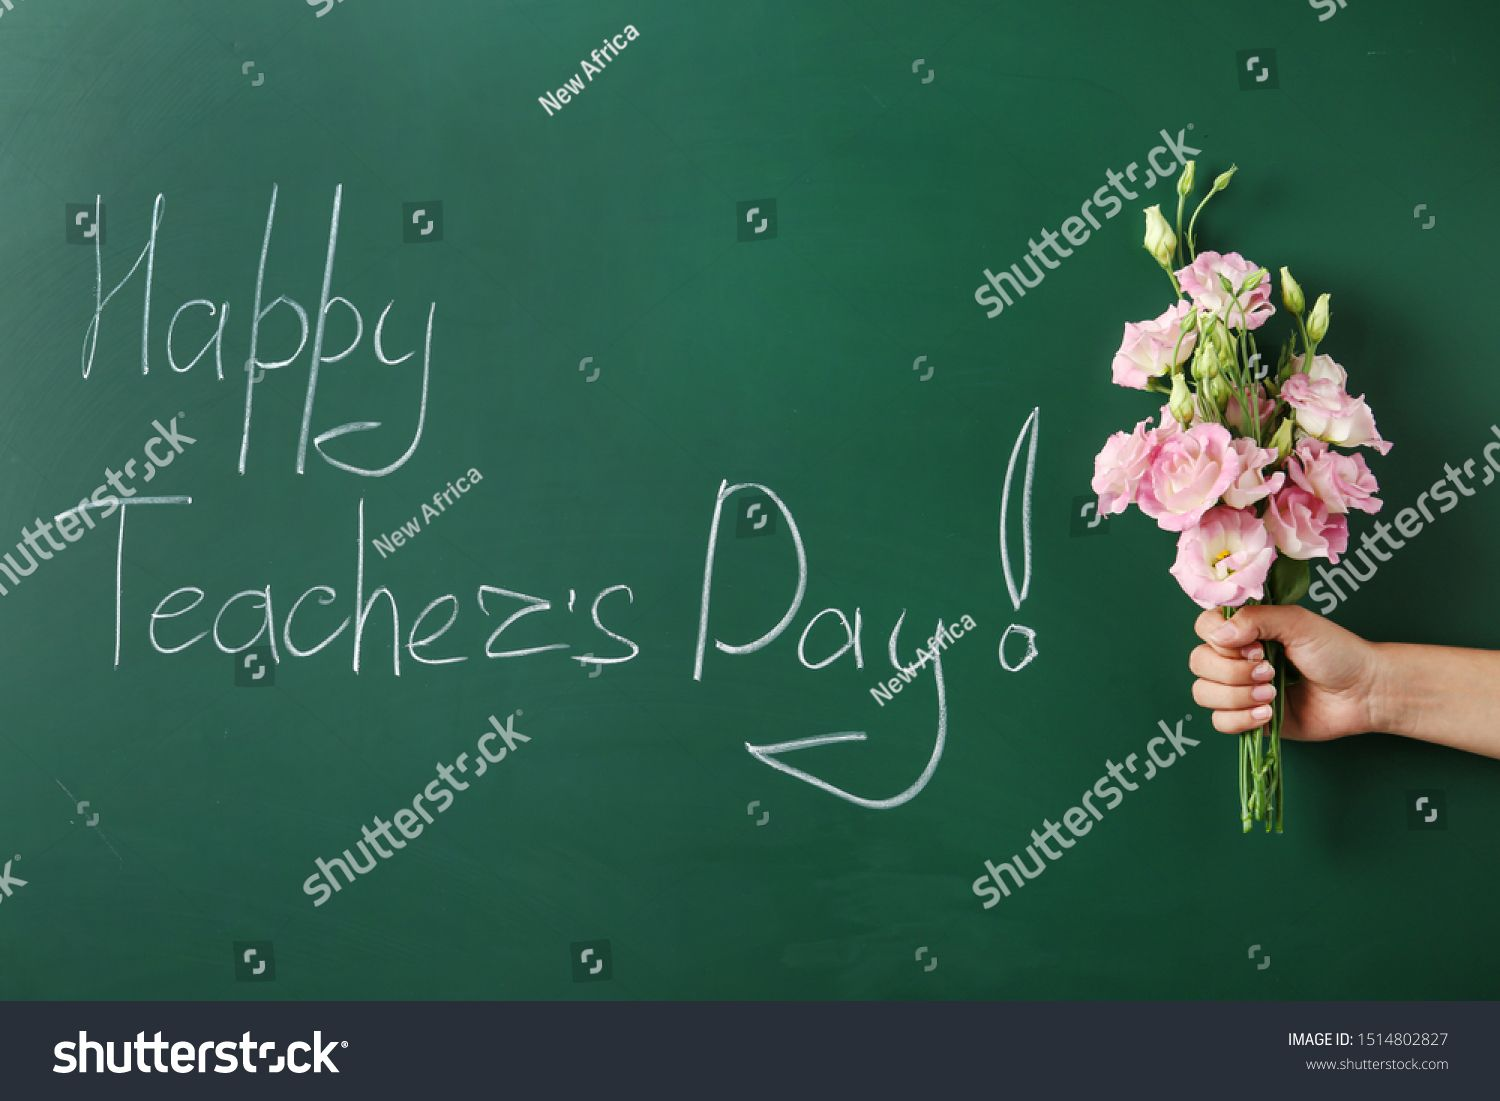 Woman Holding Flowers Near Green Chalkboard With Inscription Happy Teacher S Day Closeup View Sponsored In 2020 Holding Flowers Green Chalkboard Chalkboard Flowers